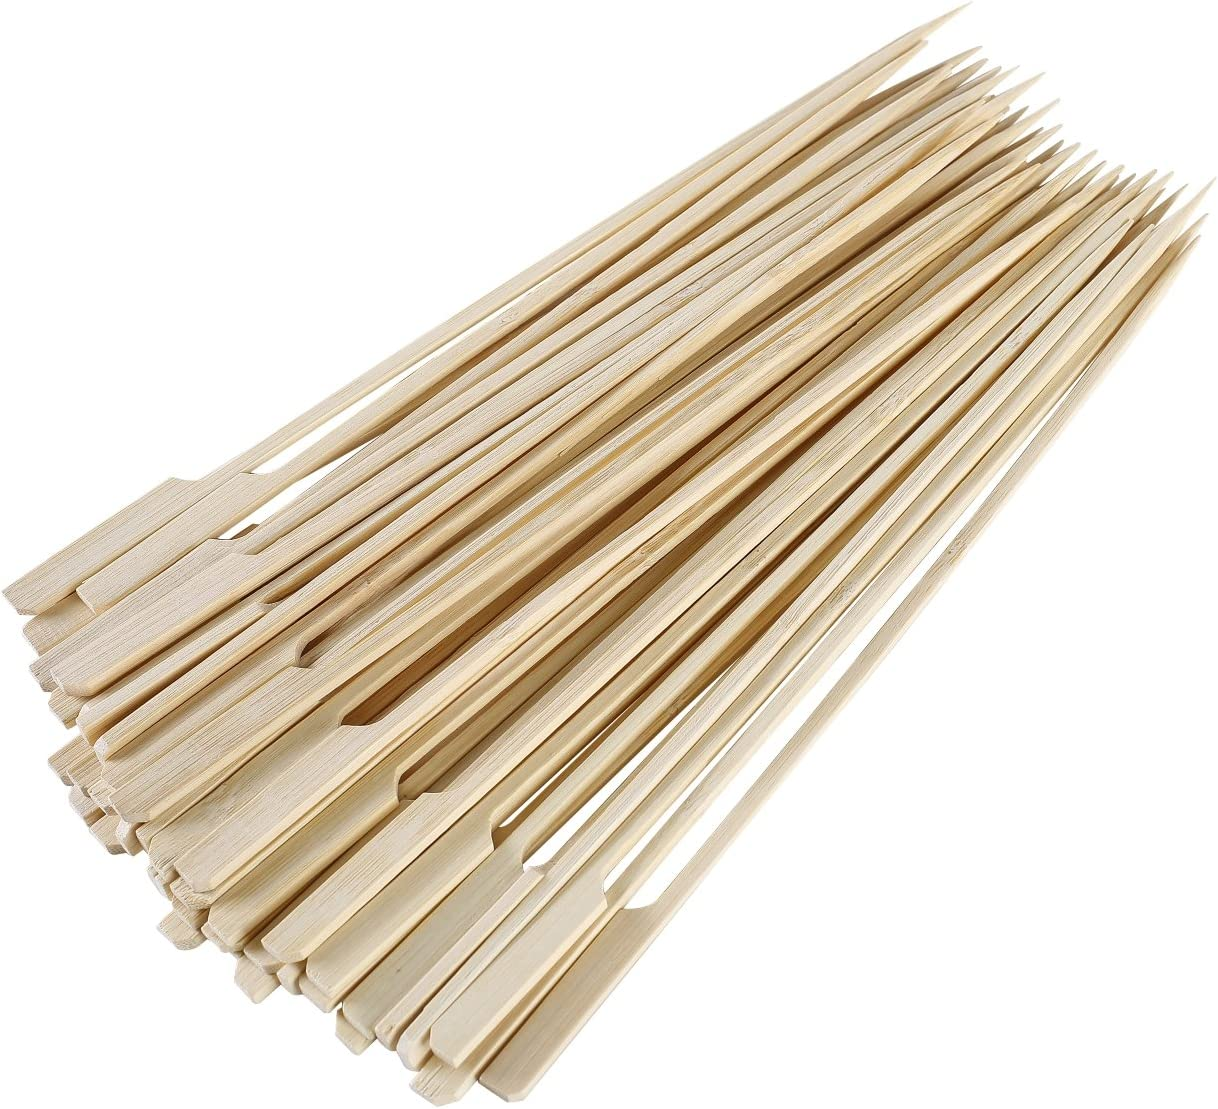 "Gmark Bamboo Paddle Skewers 10"" 100pc/Bag, Kabob Skewers, BBQ Skewers for Outdoor Grilling GM1074"